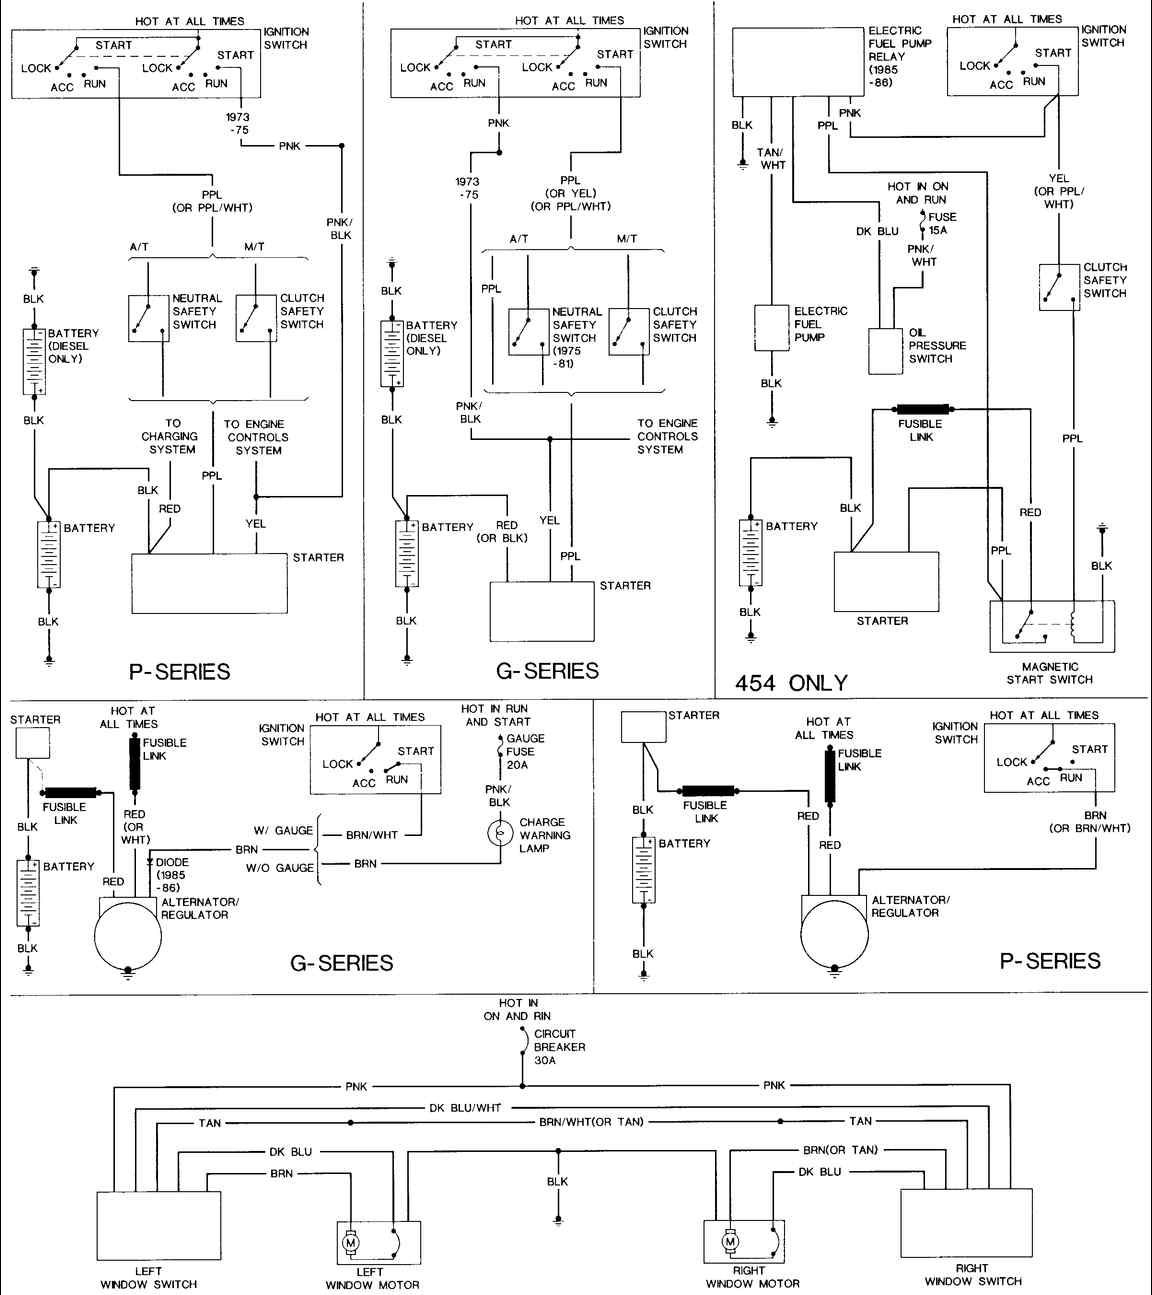 0c73623a181dc376dbb4777e2029d285 85 chevy truck wiring diagram 85 chevy van the steering column 1989 Camaro Steering Column Diagram at suagrazia.org